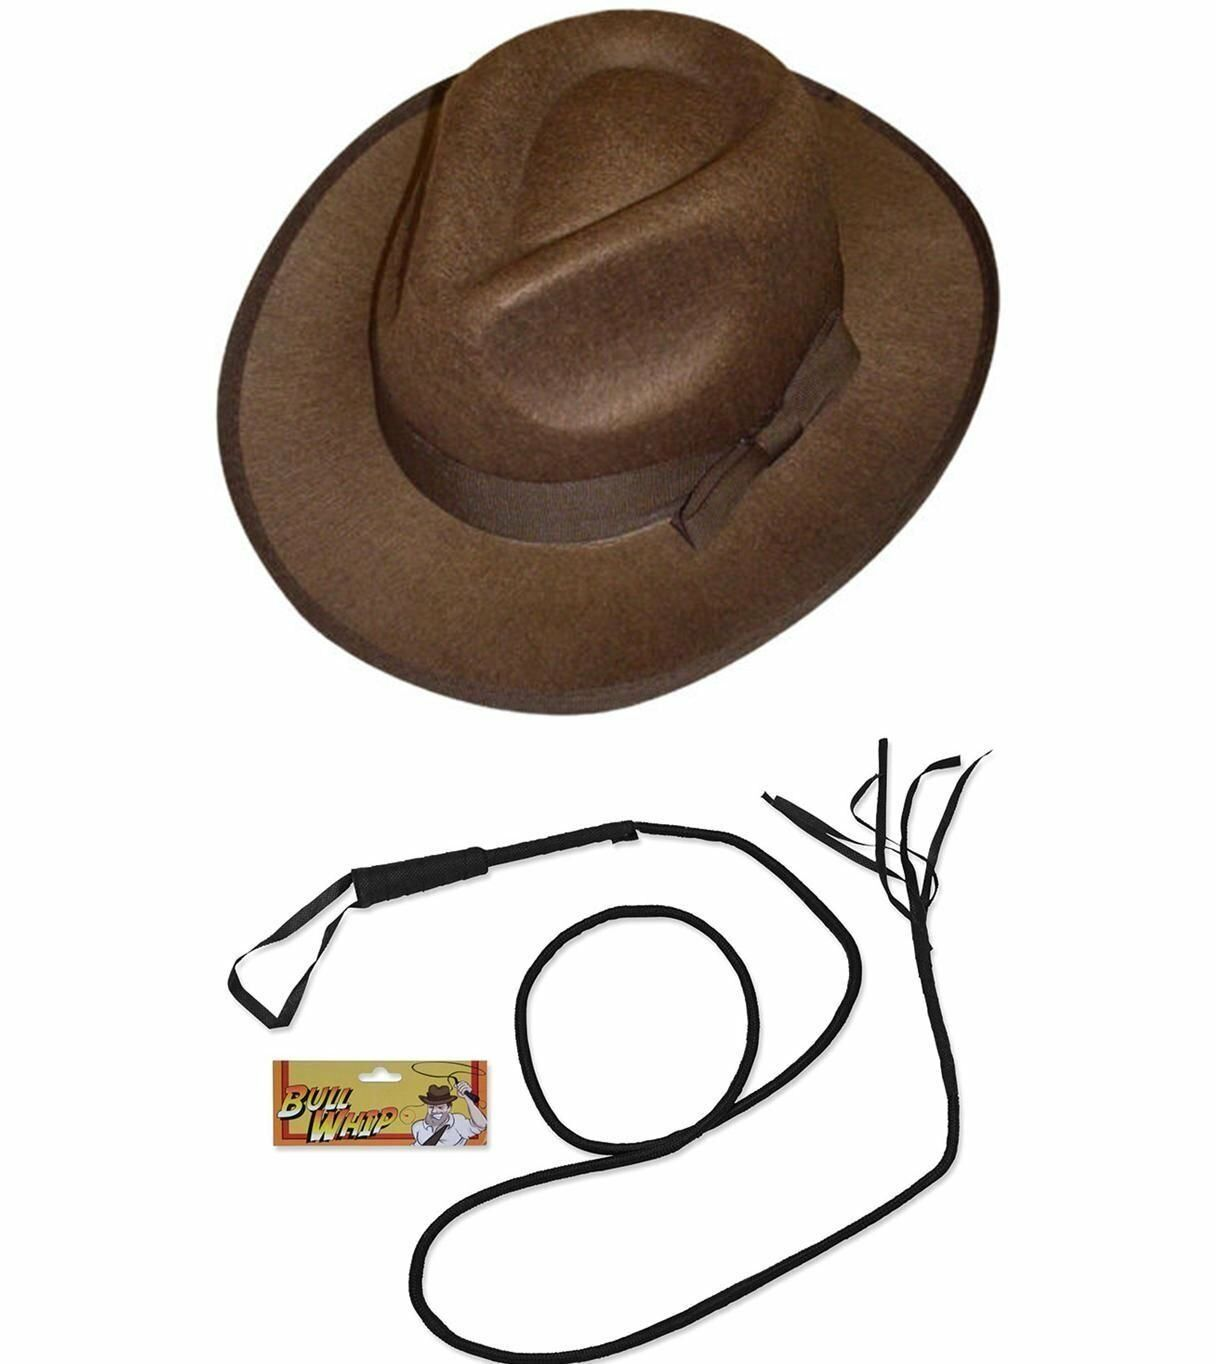 Indianna Jones Inspired Adventurer/'s High Quality Whip and Hat Costume Set